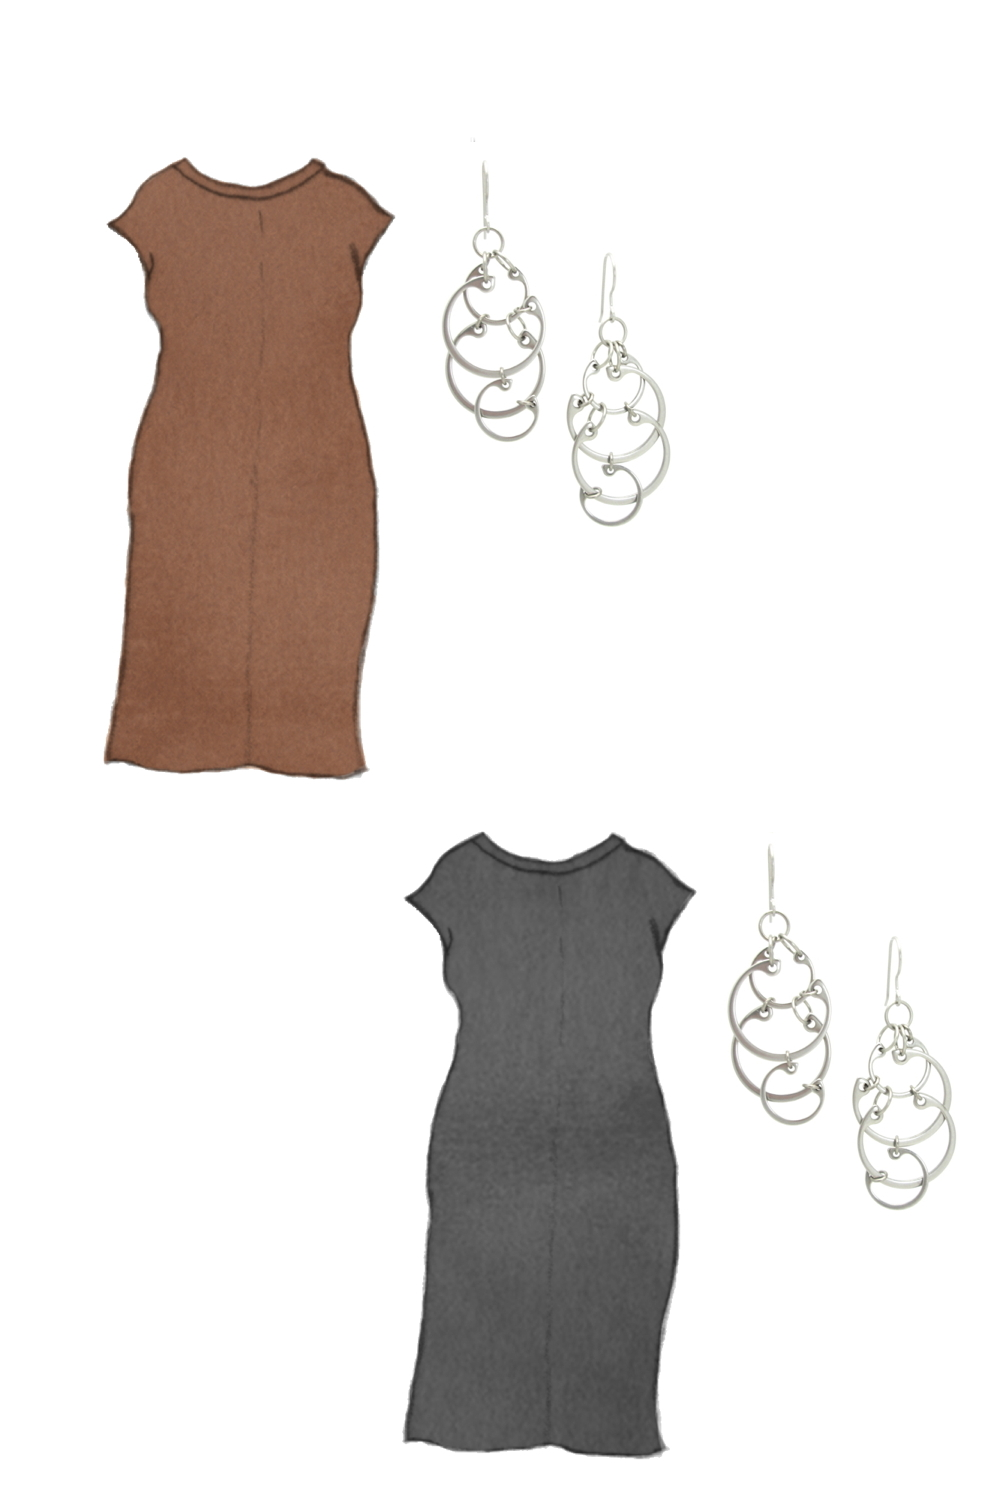 Style sketch of Everlane's Luxe Cotton Side-Slit Tee Dress in black and brown, with Wraptillion's Large Clustered Circles Earrings (modern overlapping circles statement earrings).